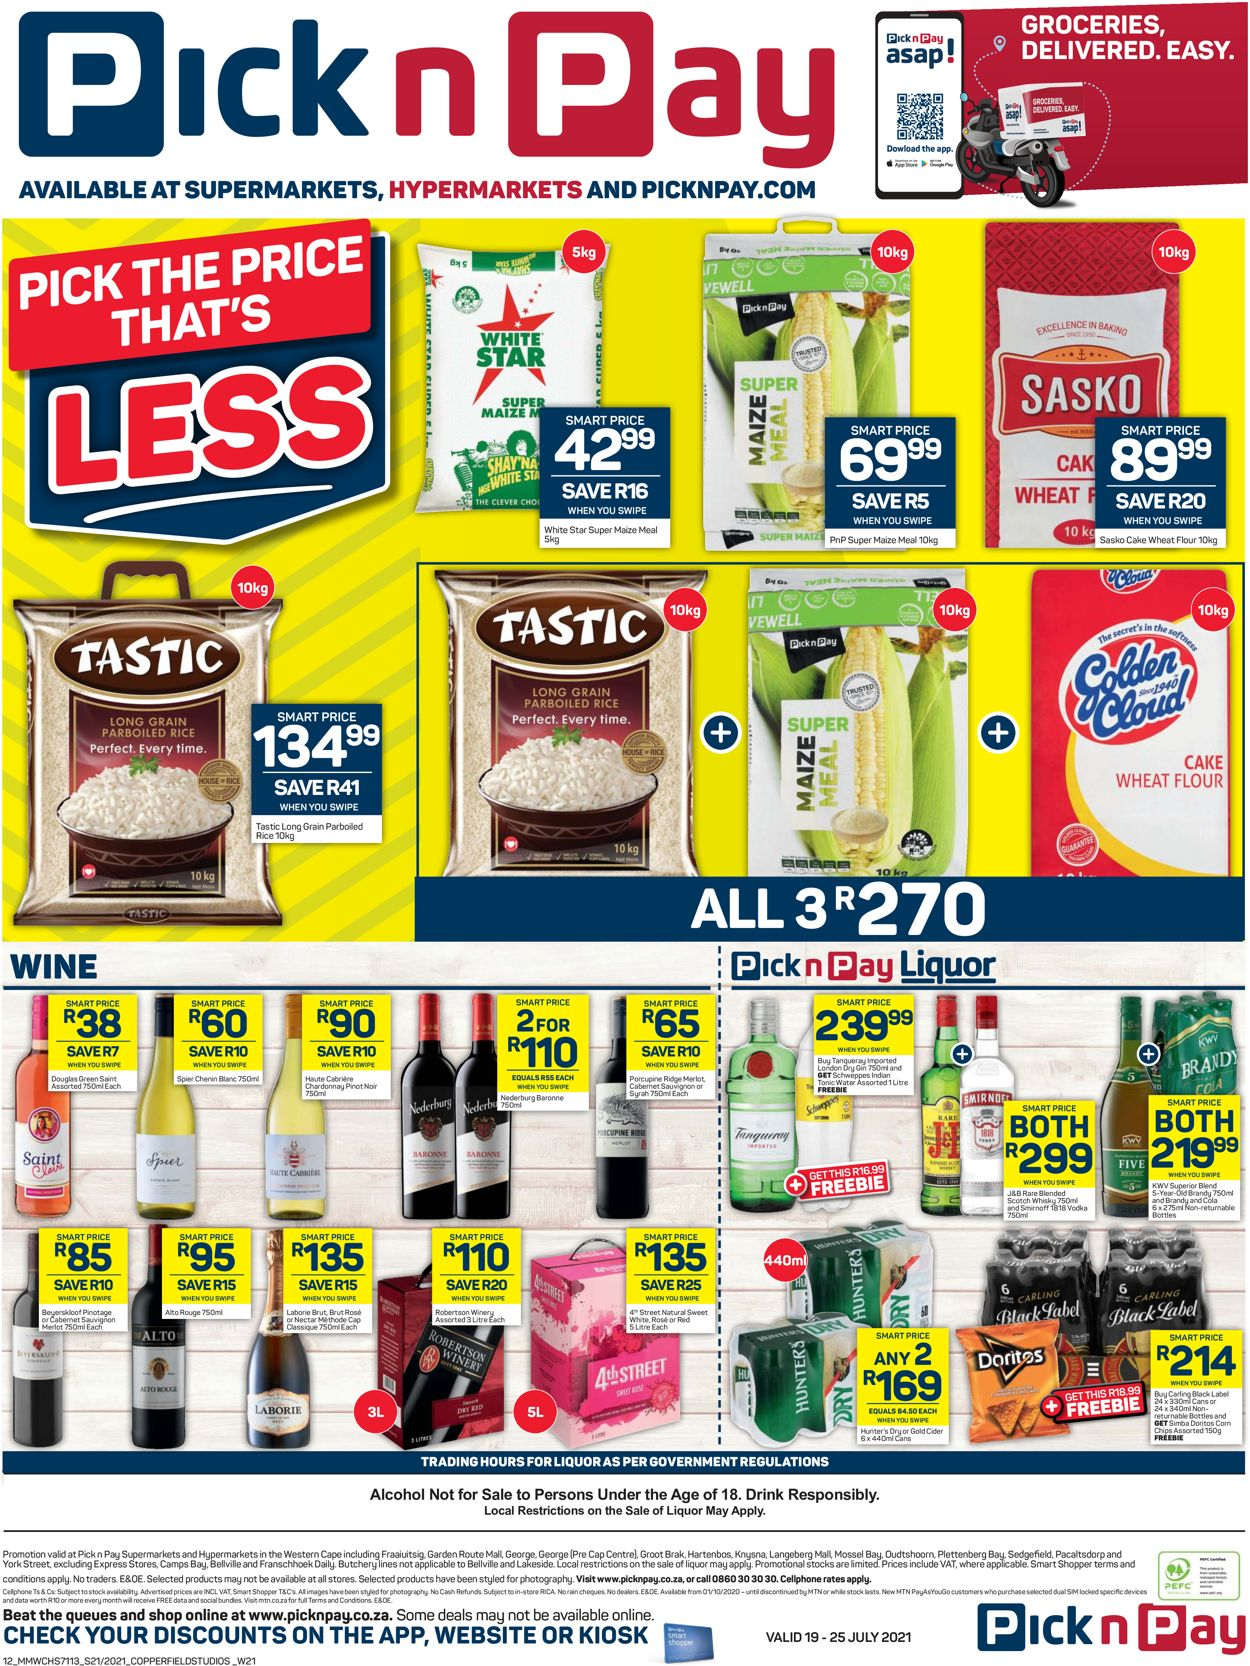 Pick n Pay Catalogue - 2021/07/19-2021/07/25 (Page 12)